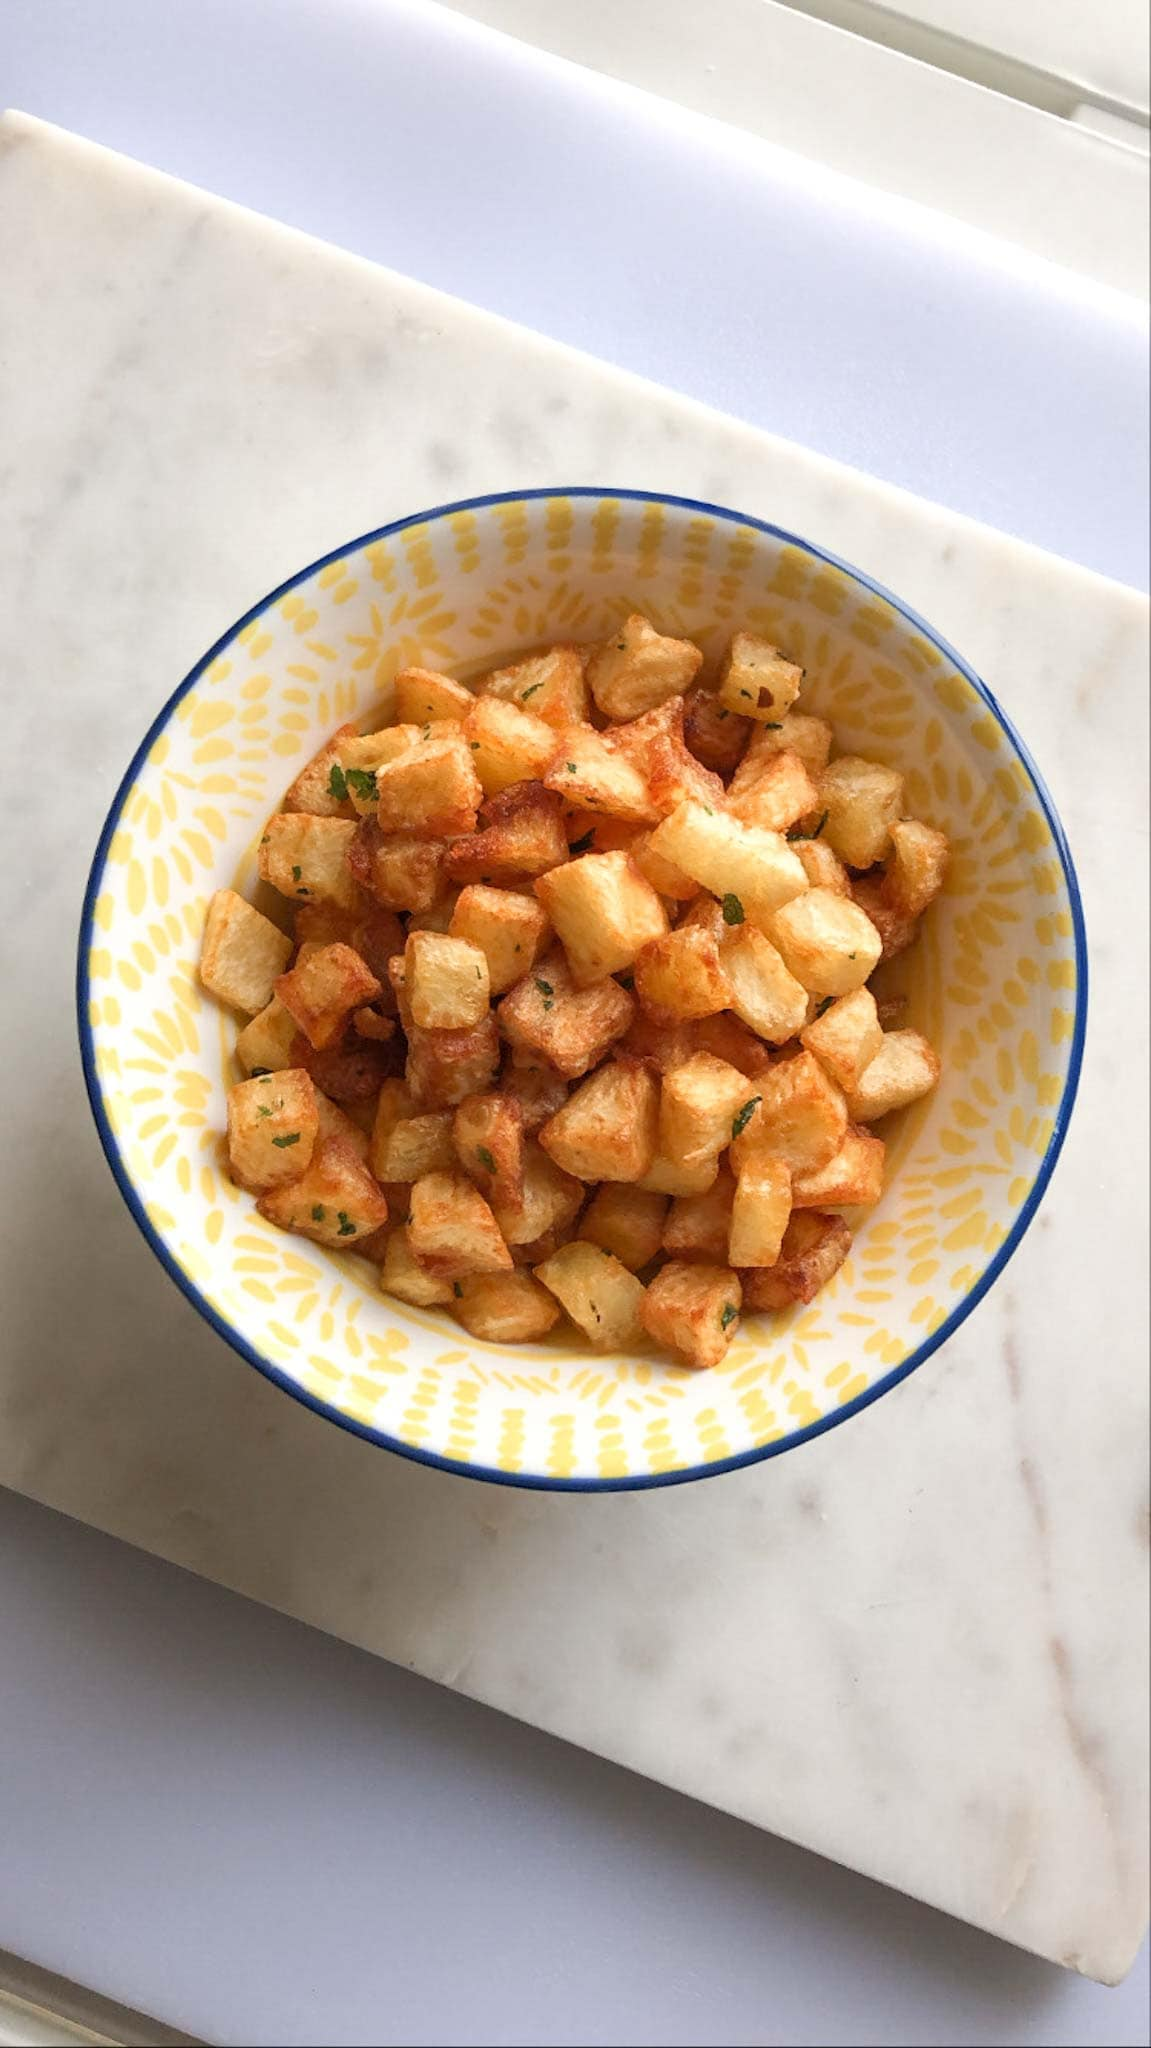 lebanese spiced potatoes in a bowl